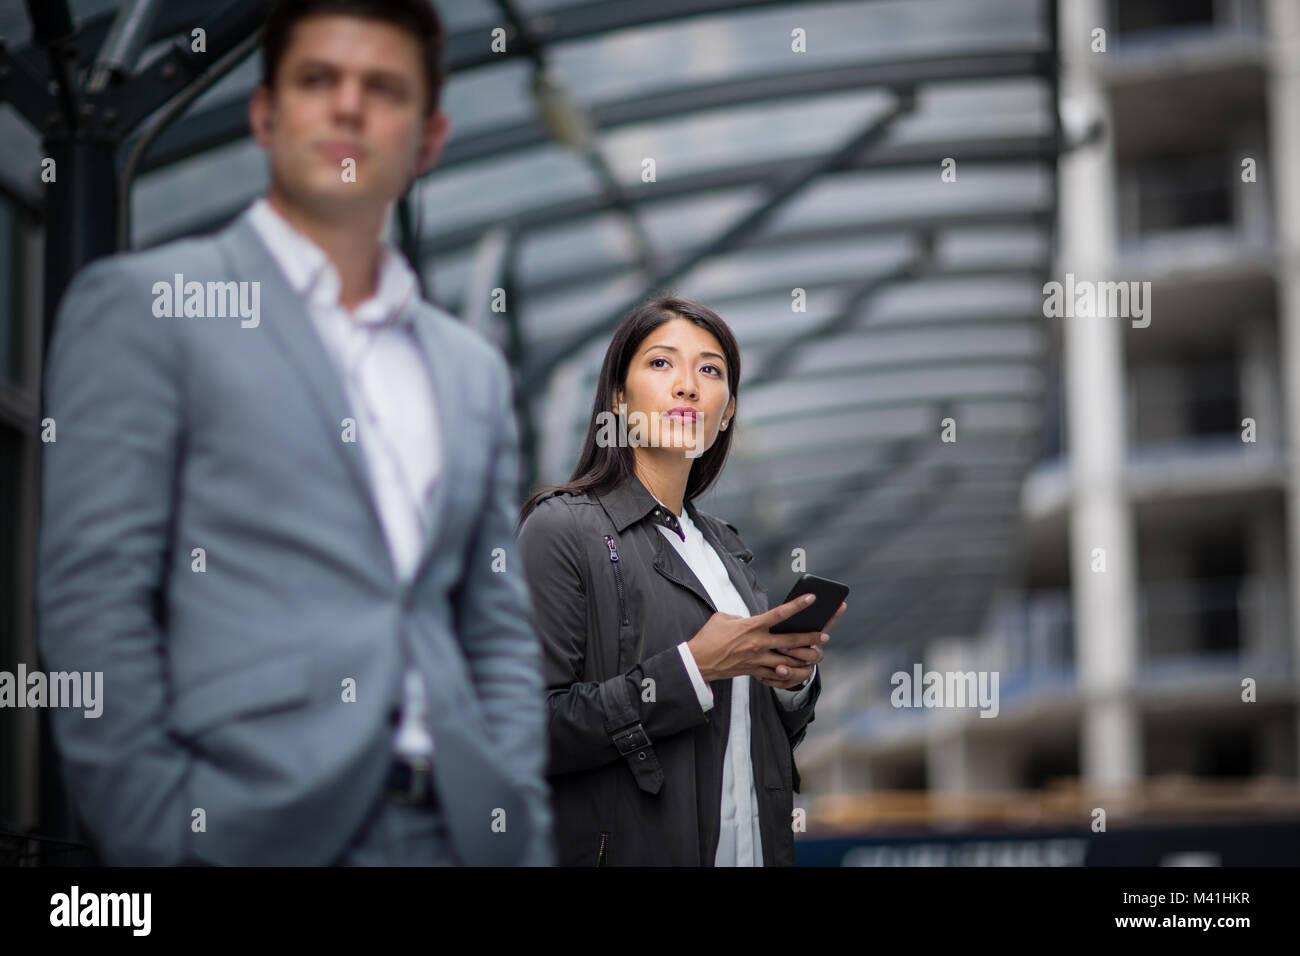 Businesswoman waiting for train on platform with smartphone in hand - Stock Image